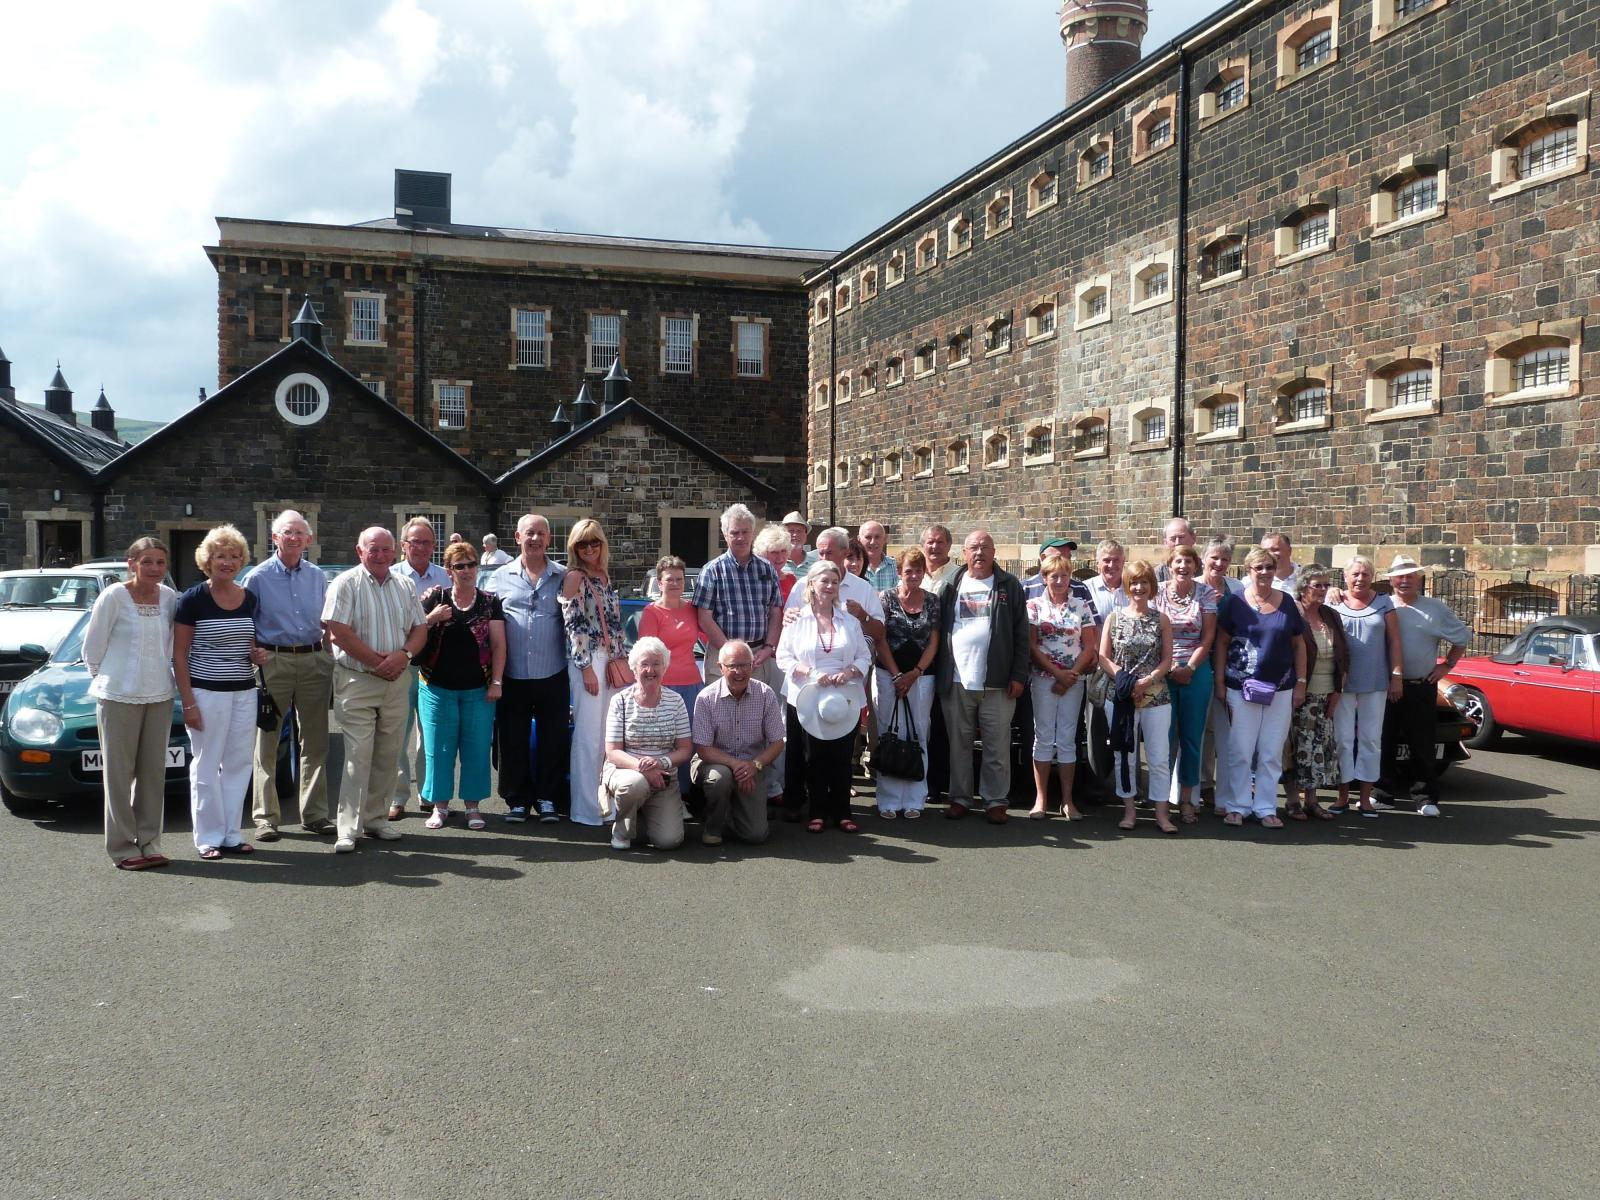 Members-at-the-Gaol-pk